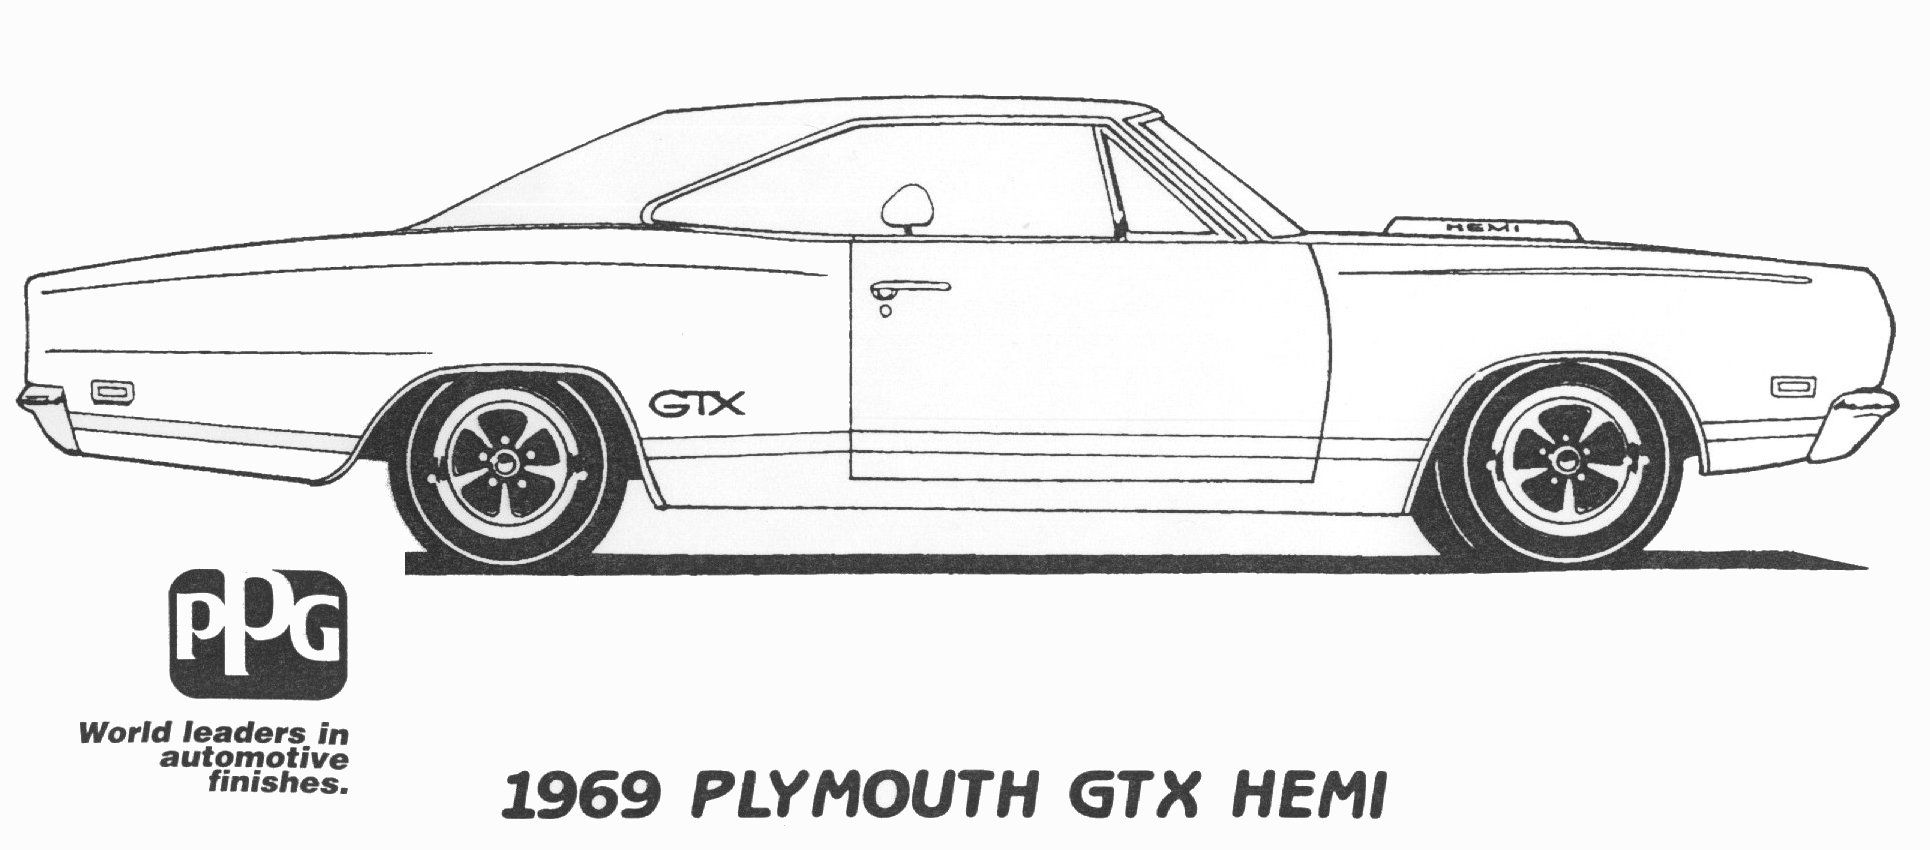 1969 Plymouth Gtx Hemi Coloring Page Ppg Cars Pinterest